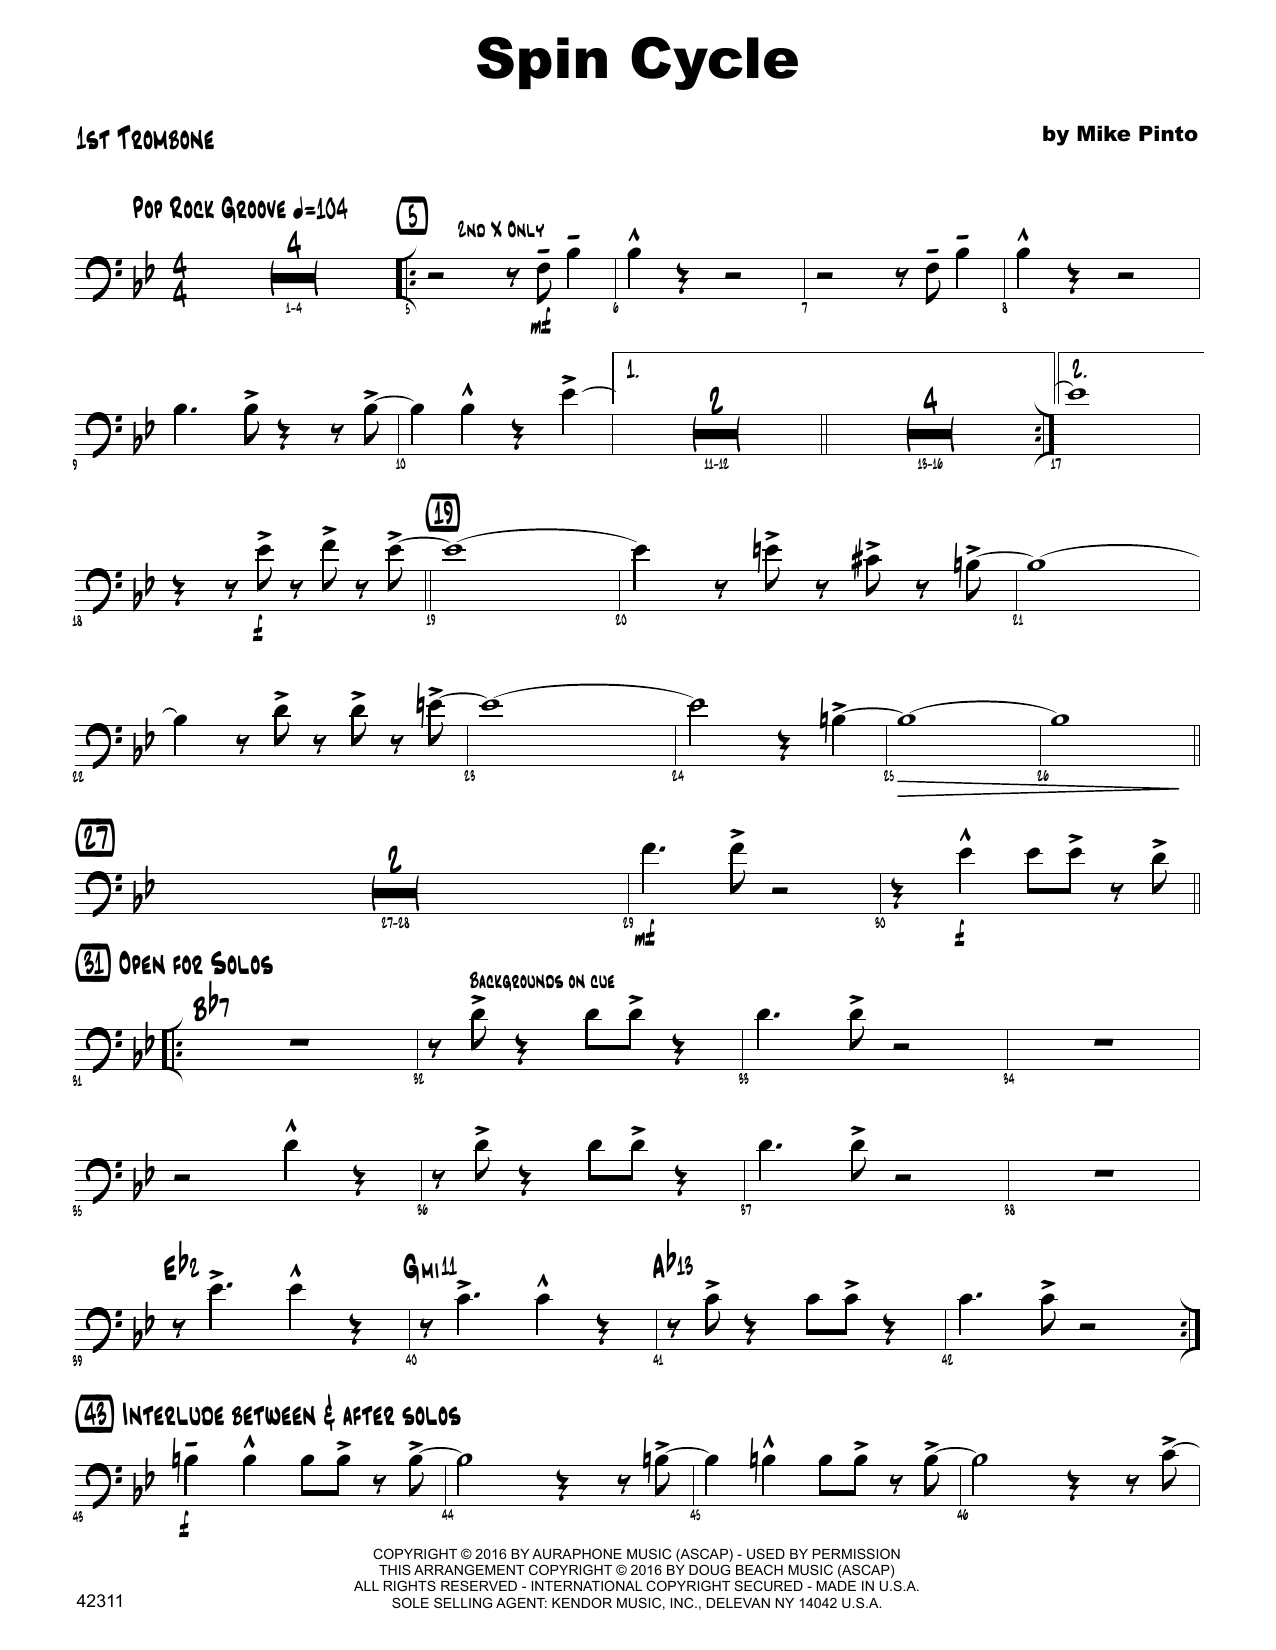 Spin Cycle - 1st Trombone Sheet Music